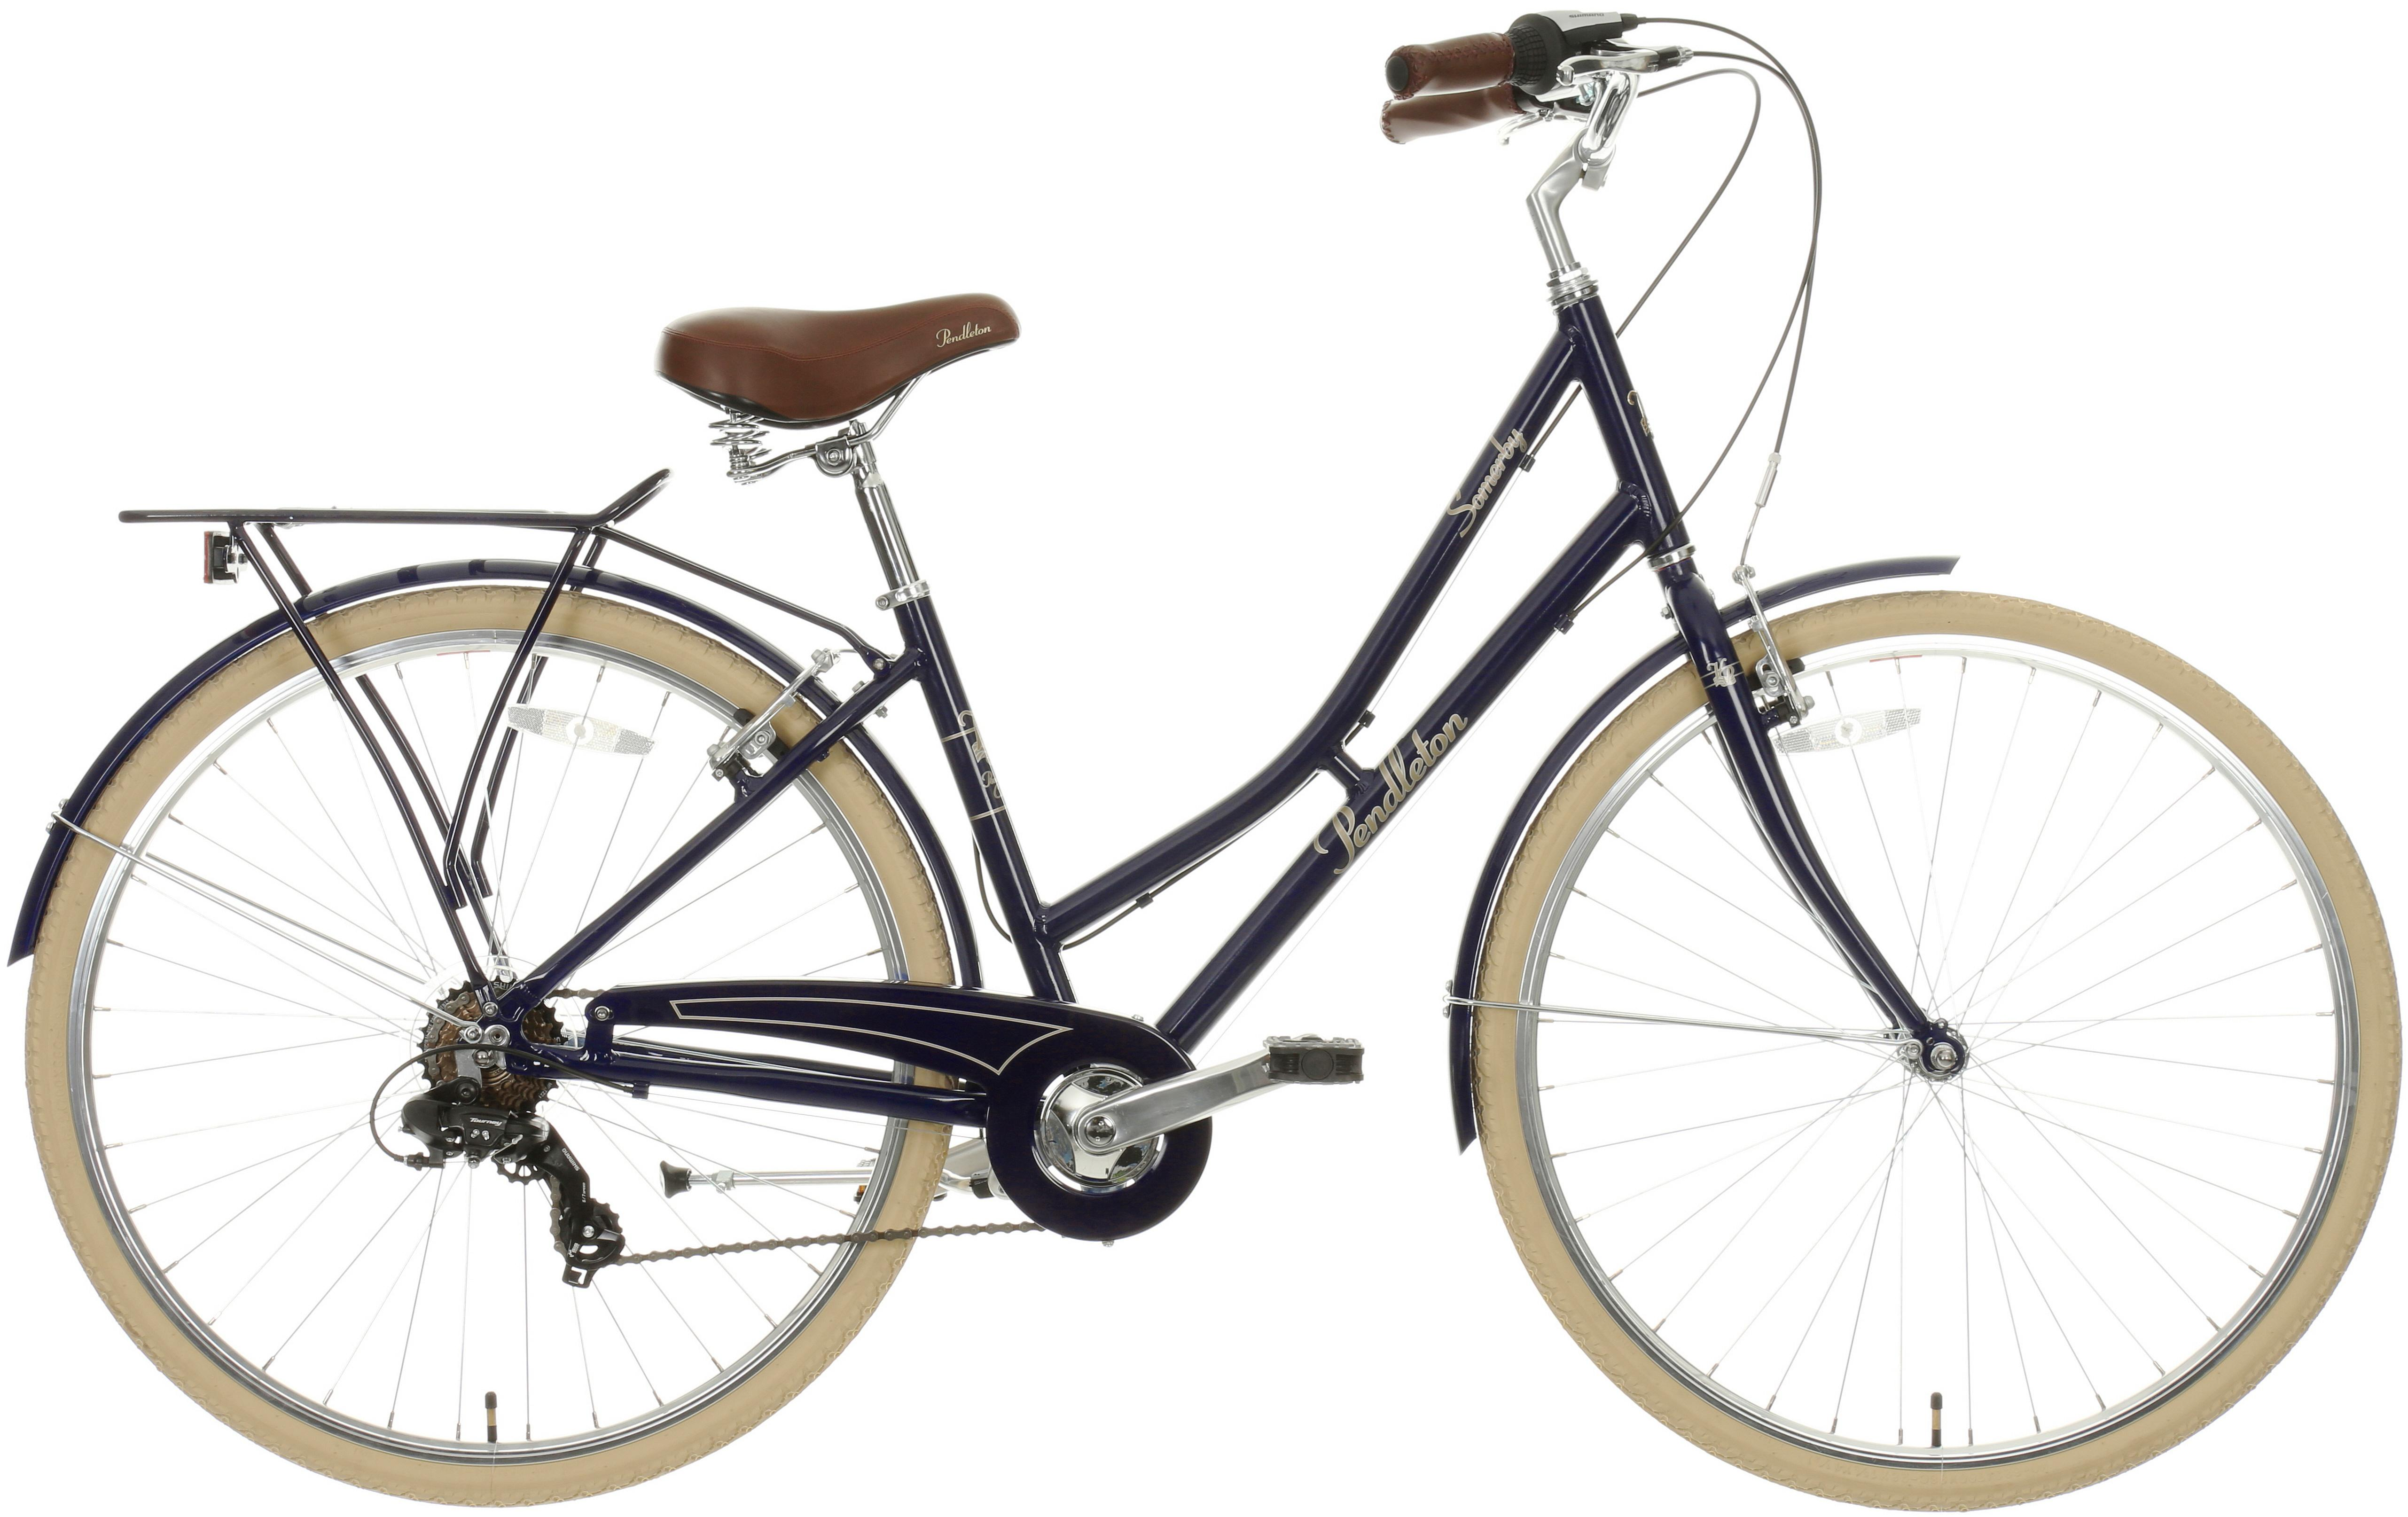 Pendleton Somerby Hybrid Bike - Midnight Blue 19 inch